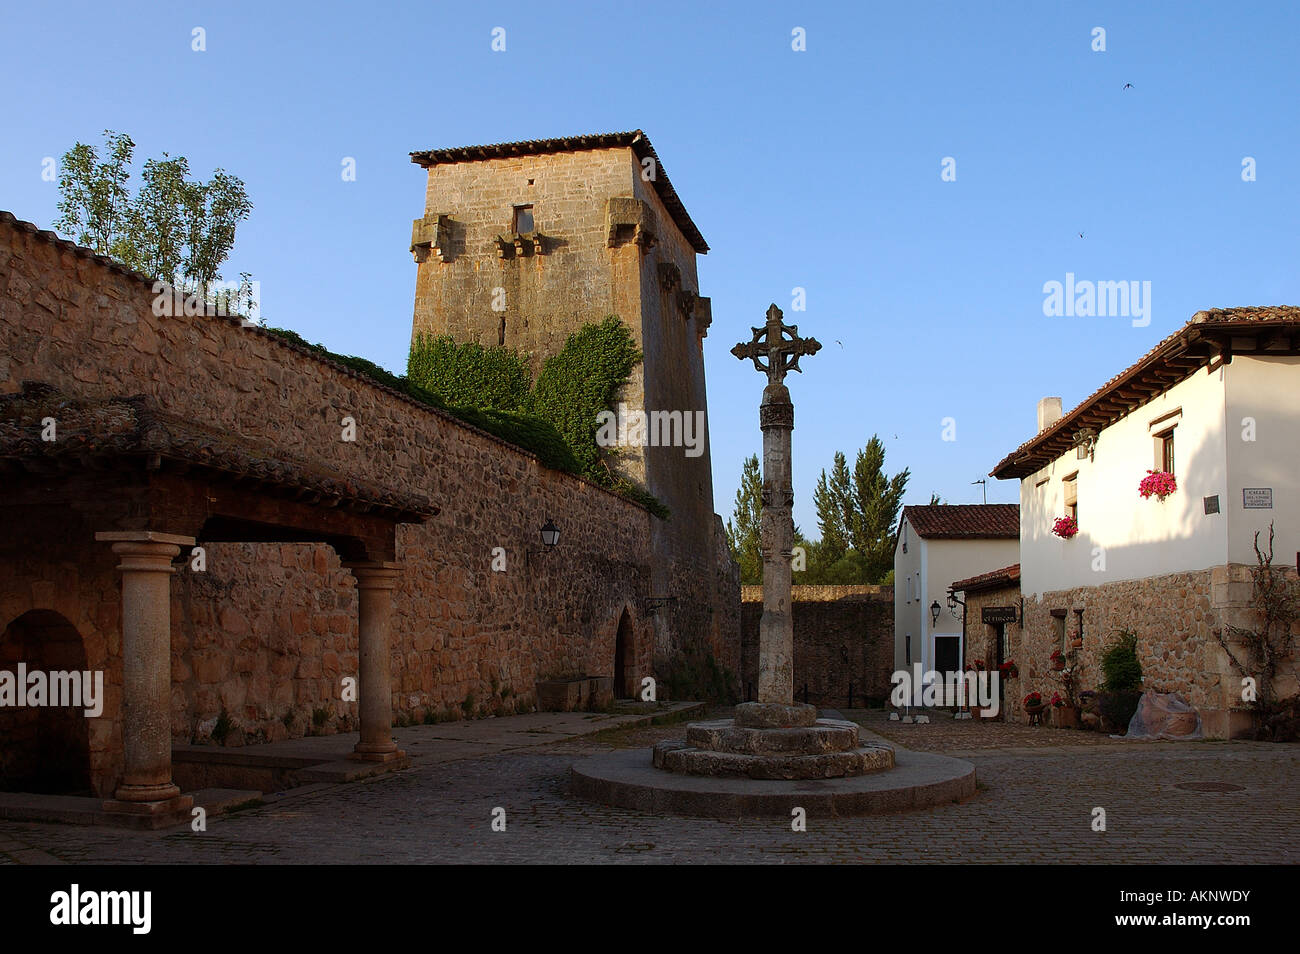 The ancient market town of Covarrubias is famous as one of Spain's most beautiful and well preserved - Stock Image